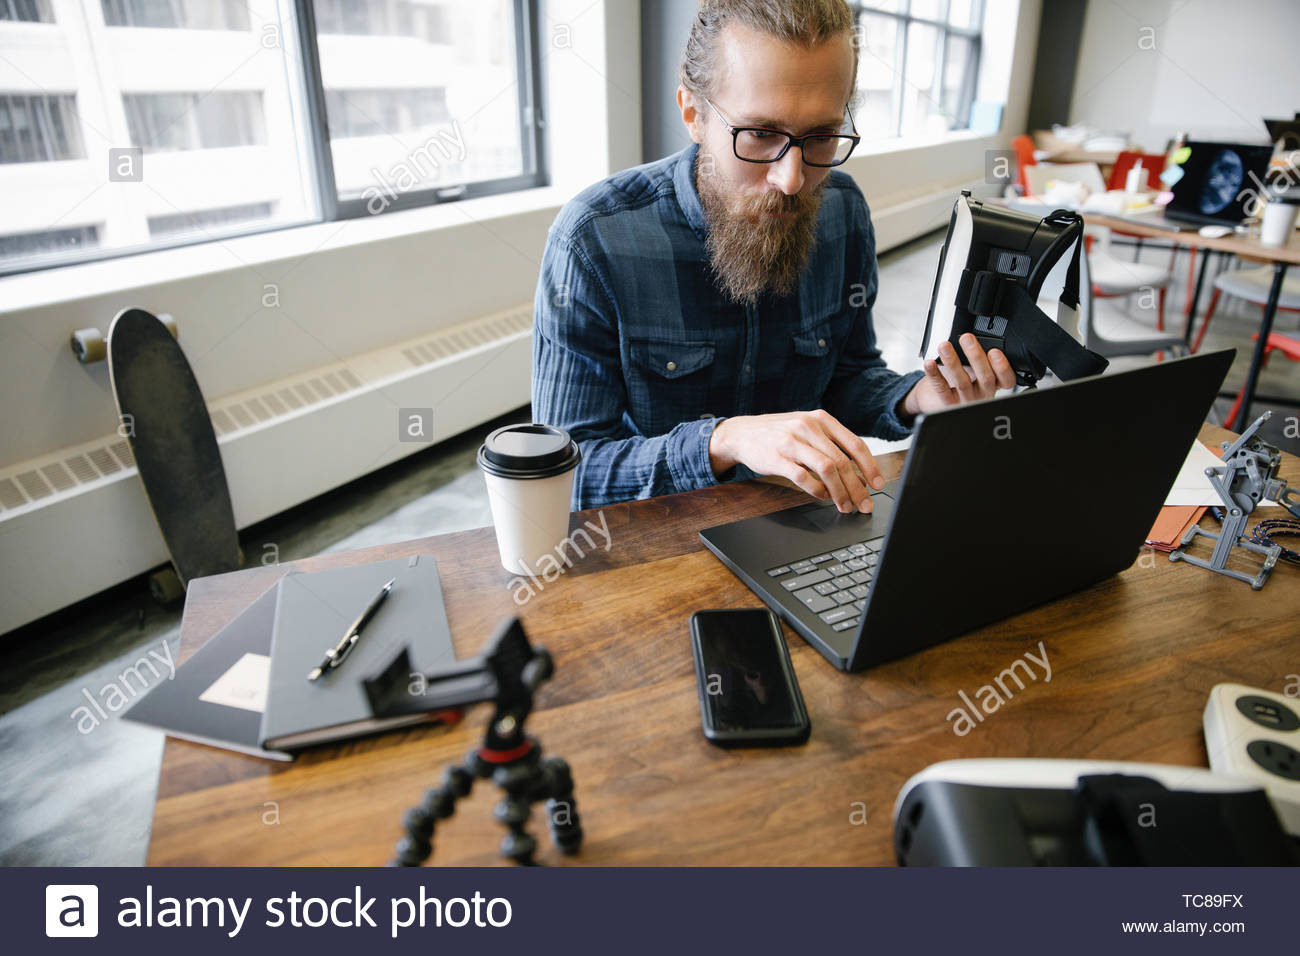 Computer programmer with virtual reality simulator glasses working at laptop in office - Stock Image